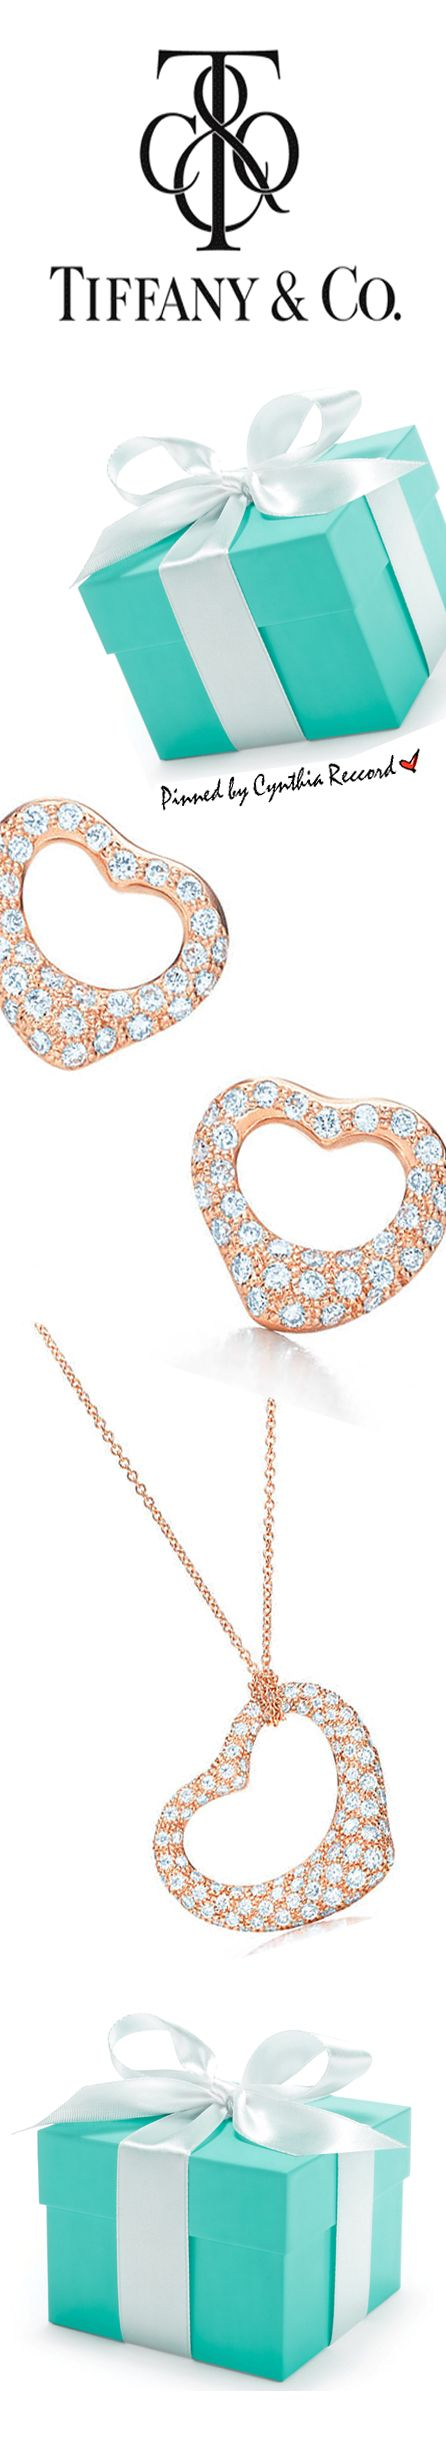 Valentine's Gifting | Elsa Peretti® Open Heart Collection for Tiffany & Co. | cynthia reccord | #Impo